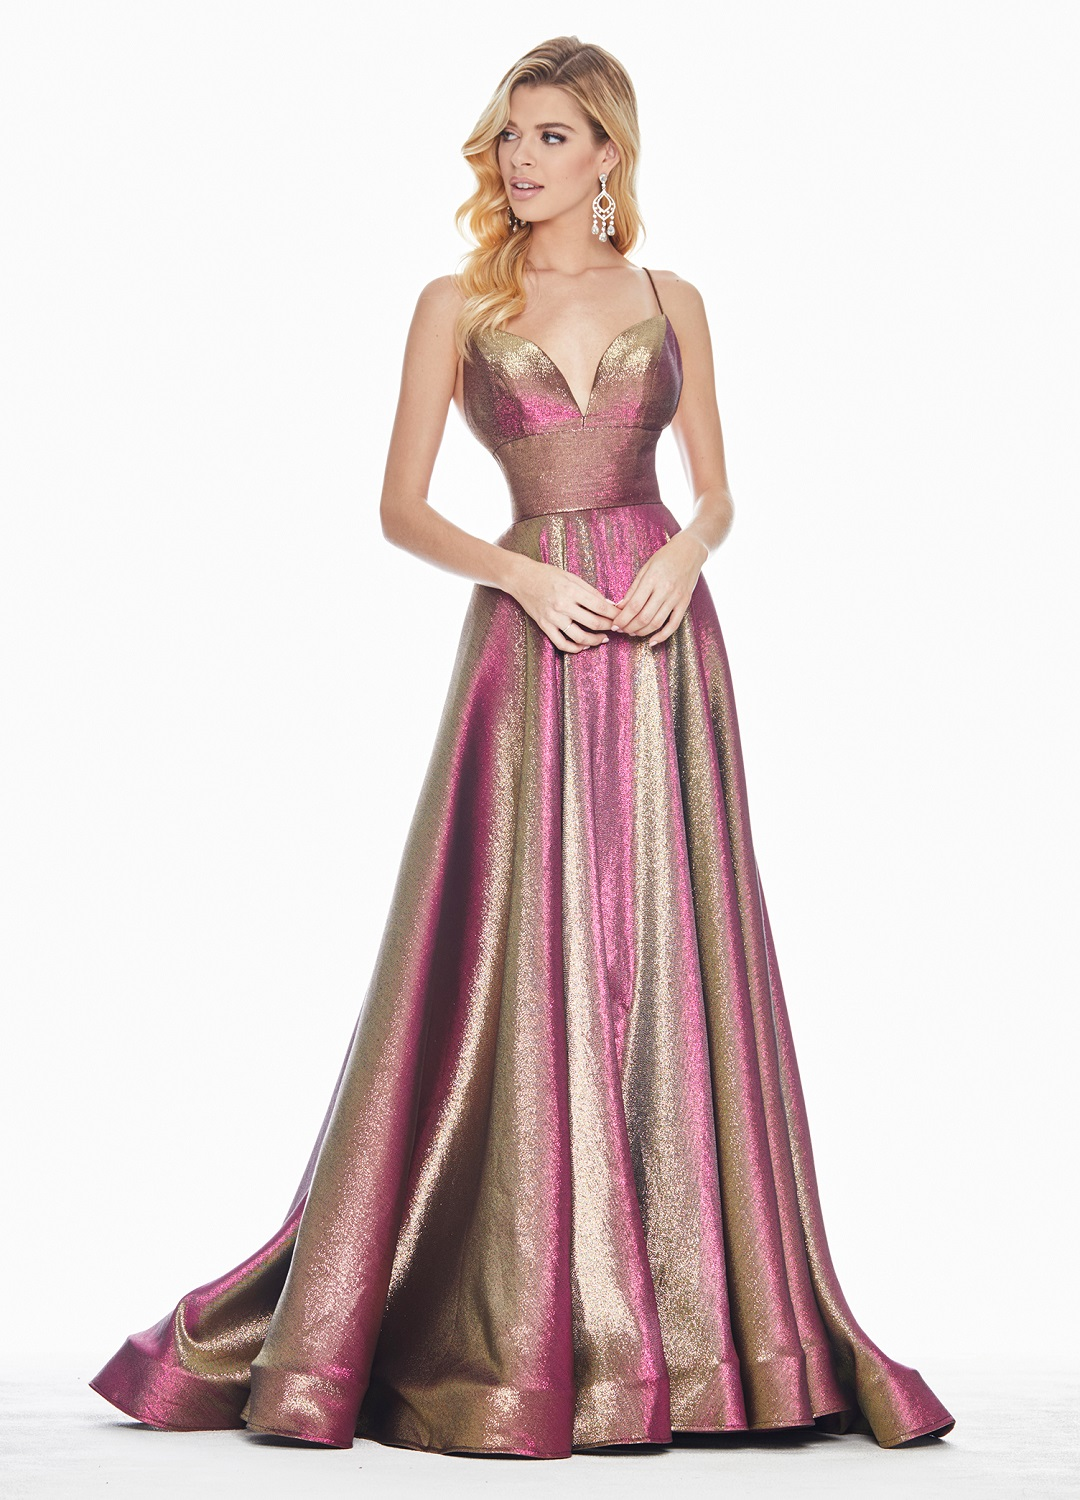 Ashley Lauren 1513 Fuchsia Metallic A-line Formal Dress Front